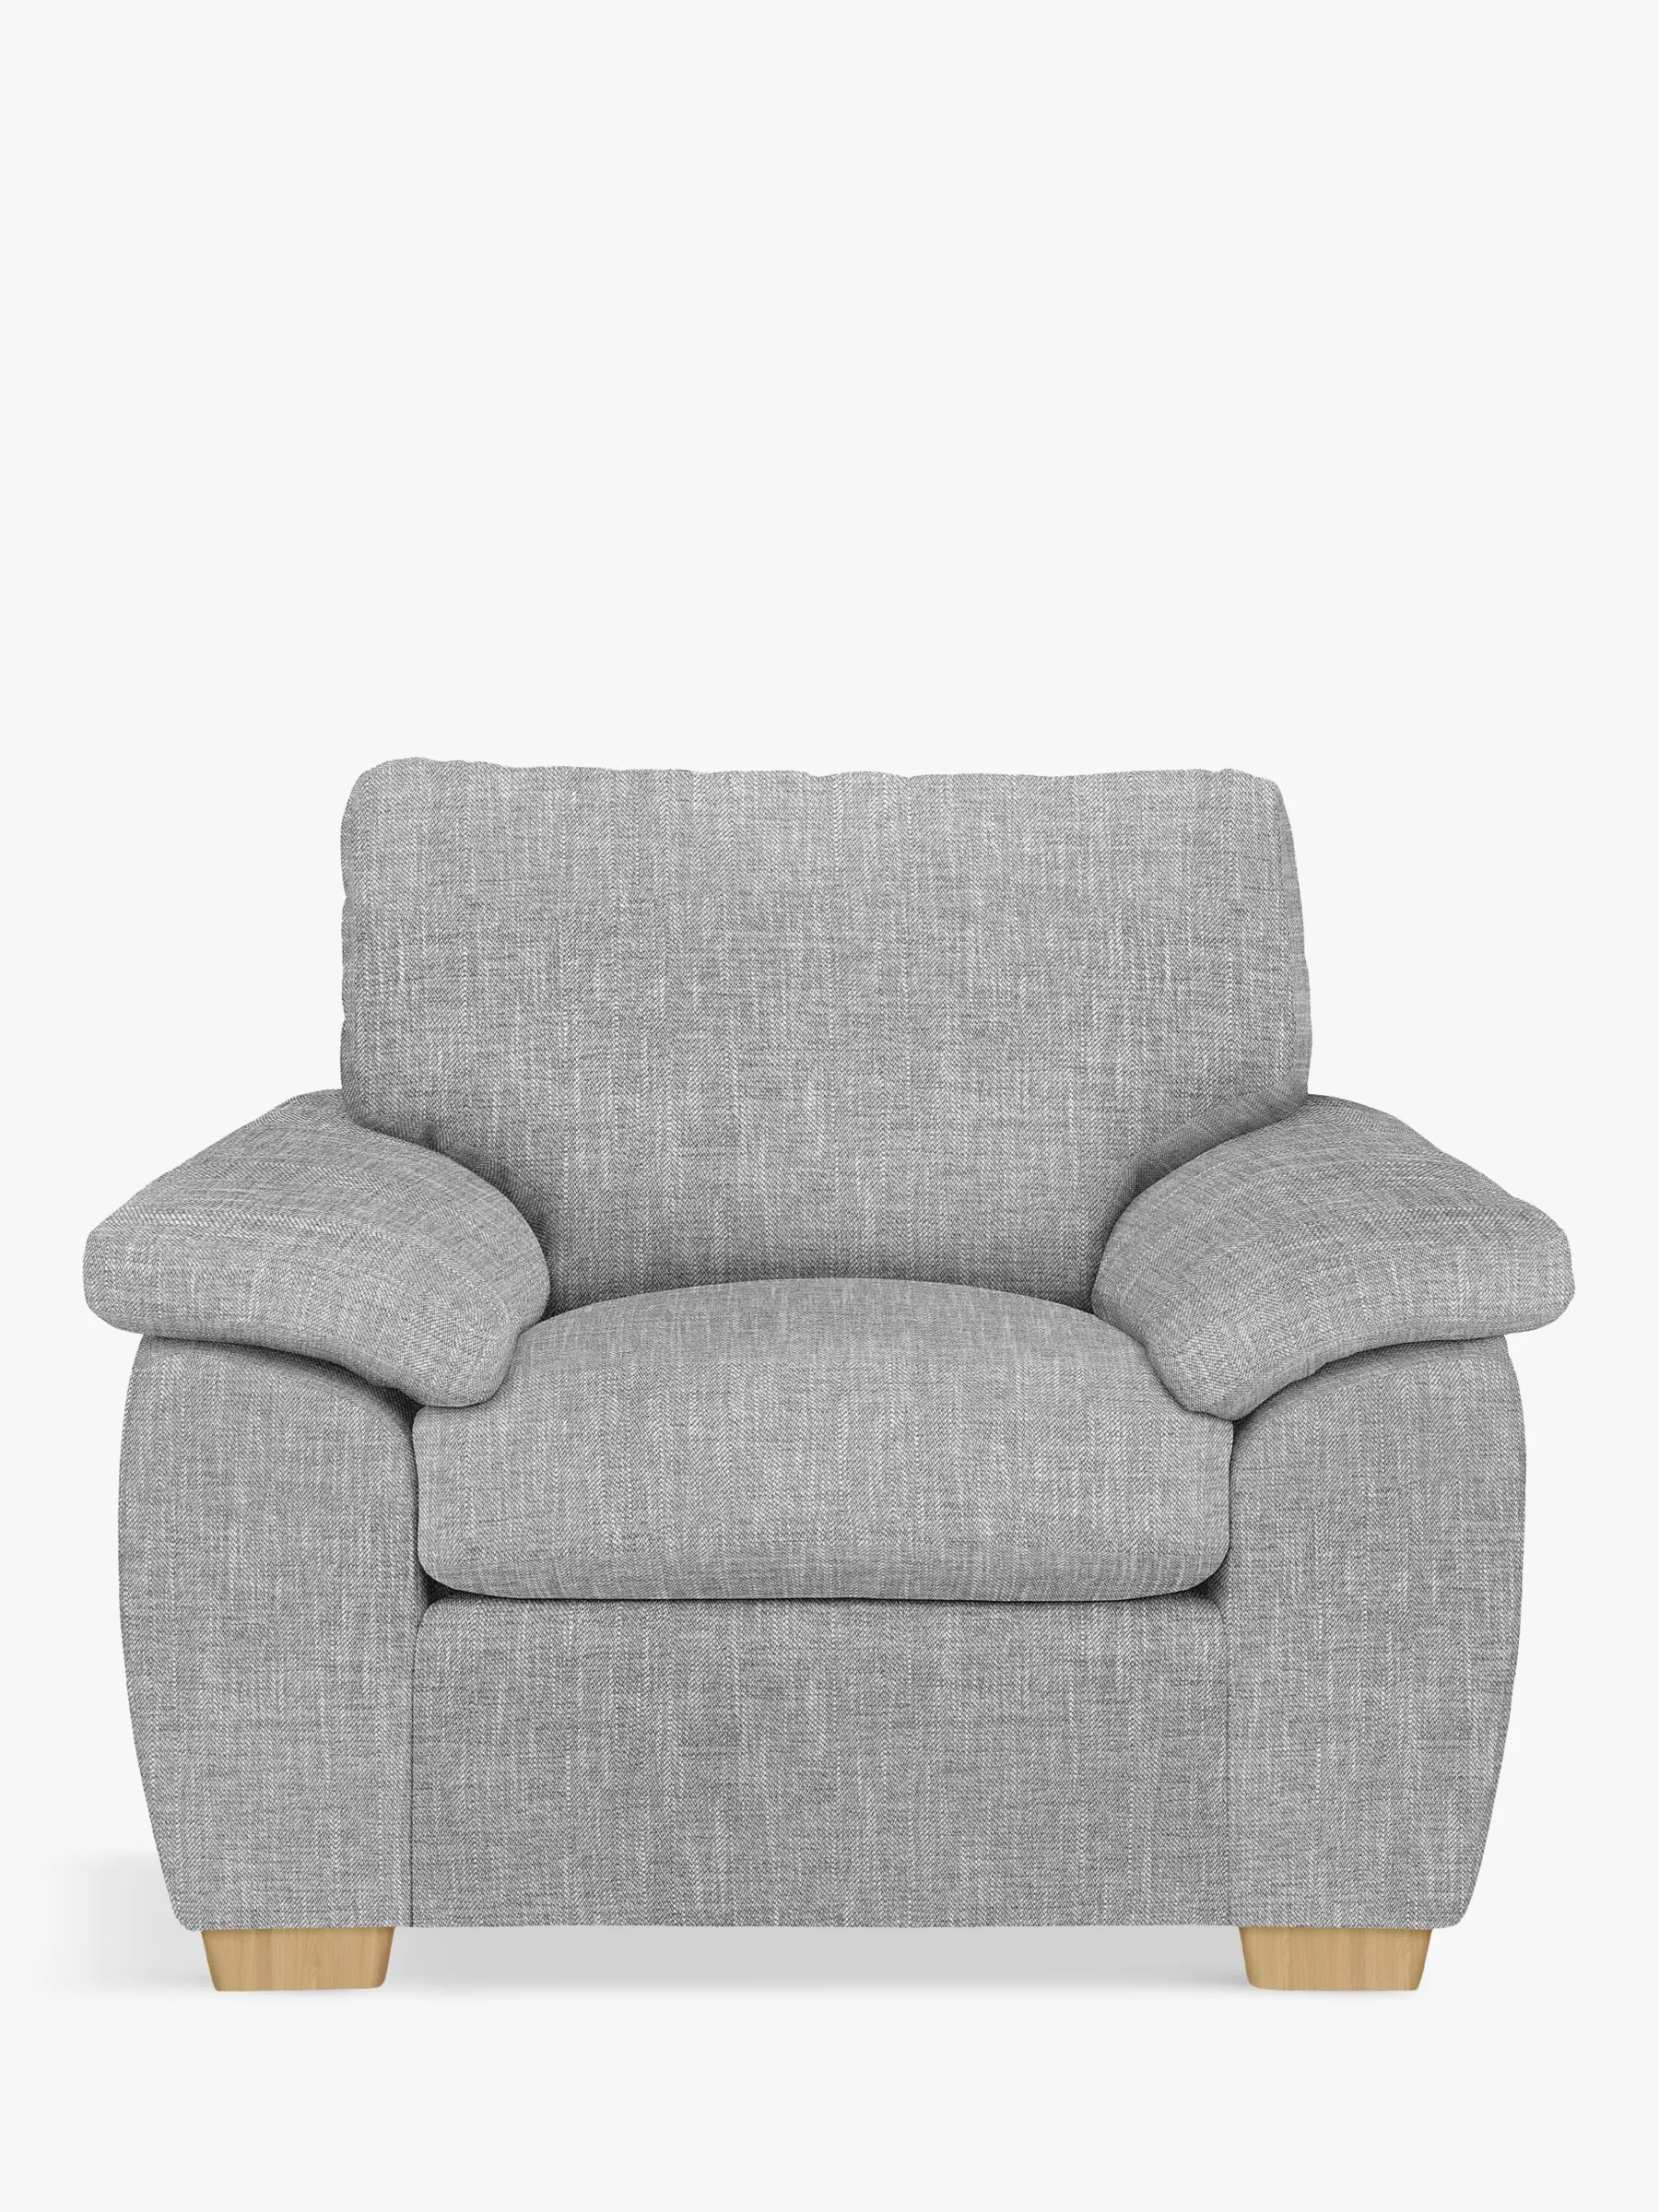 camden sofa john lewis french styles and partners armchair light leg at